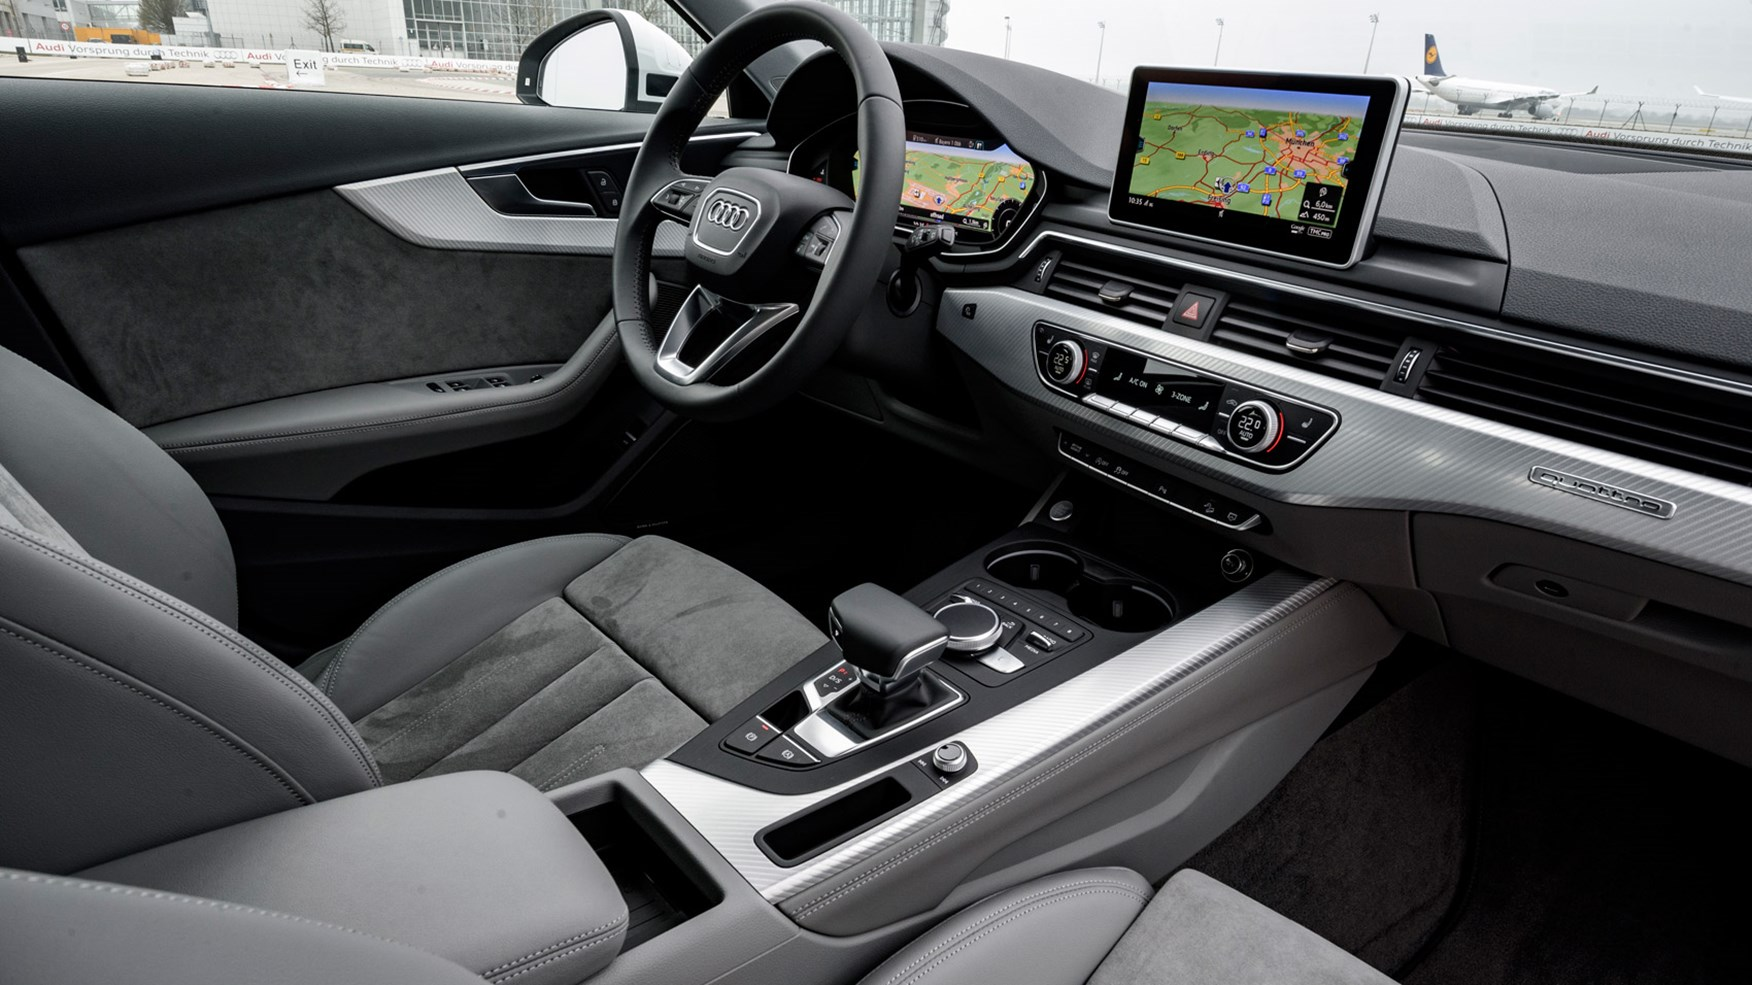 AUDI A4 Car Lease Deals amp Contract Hire  Leasing Options